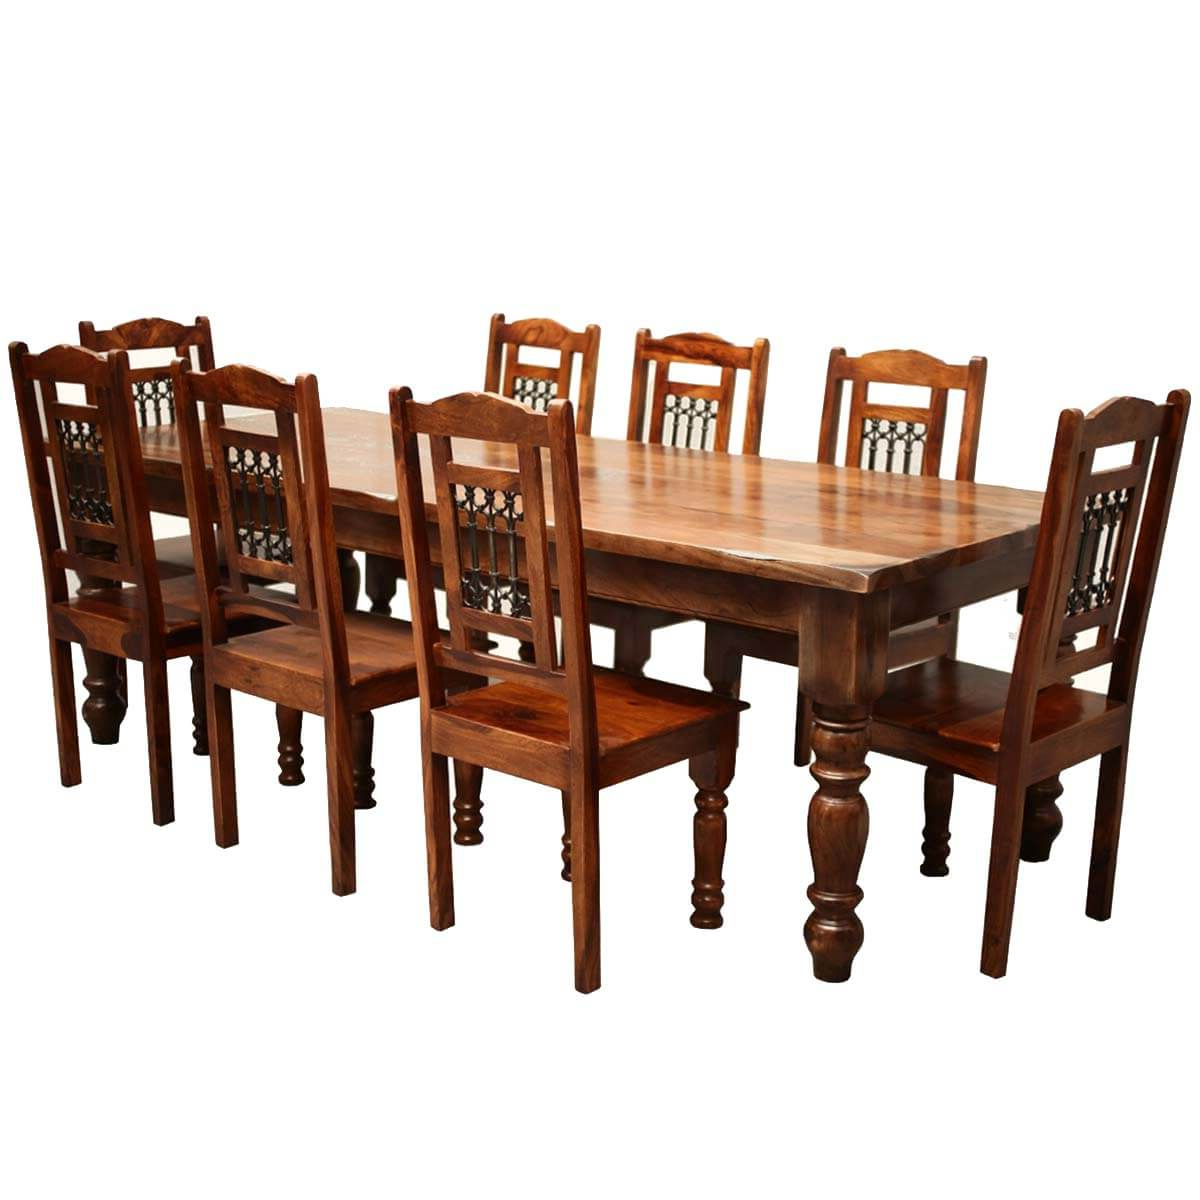 Amir 5 Piece Solid Wood Dining Sets (Set Of 5) Intended For Fashionable Large Kitchen Table Set – Home Decor Photos Gallery (Gallery 19 of 20)